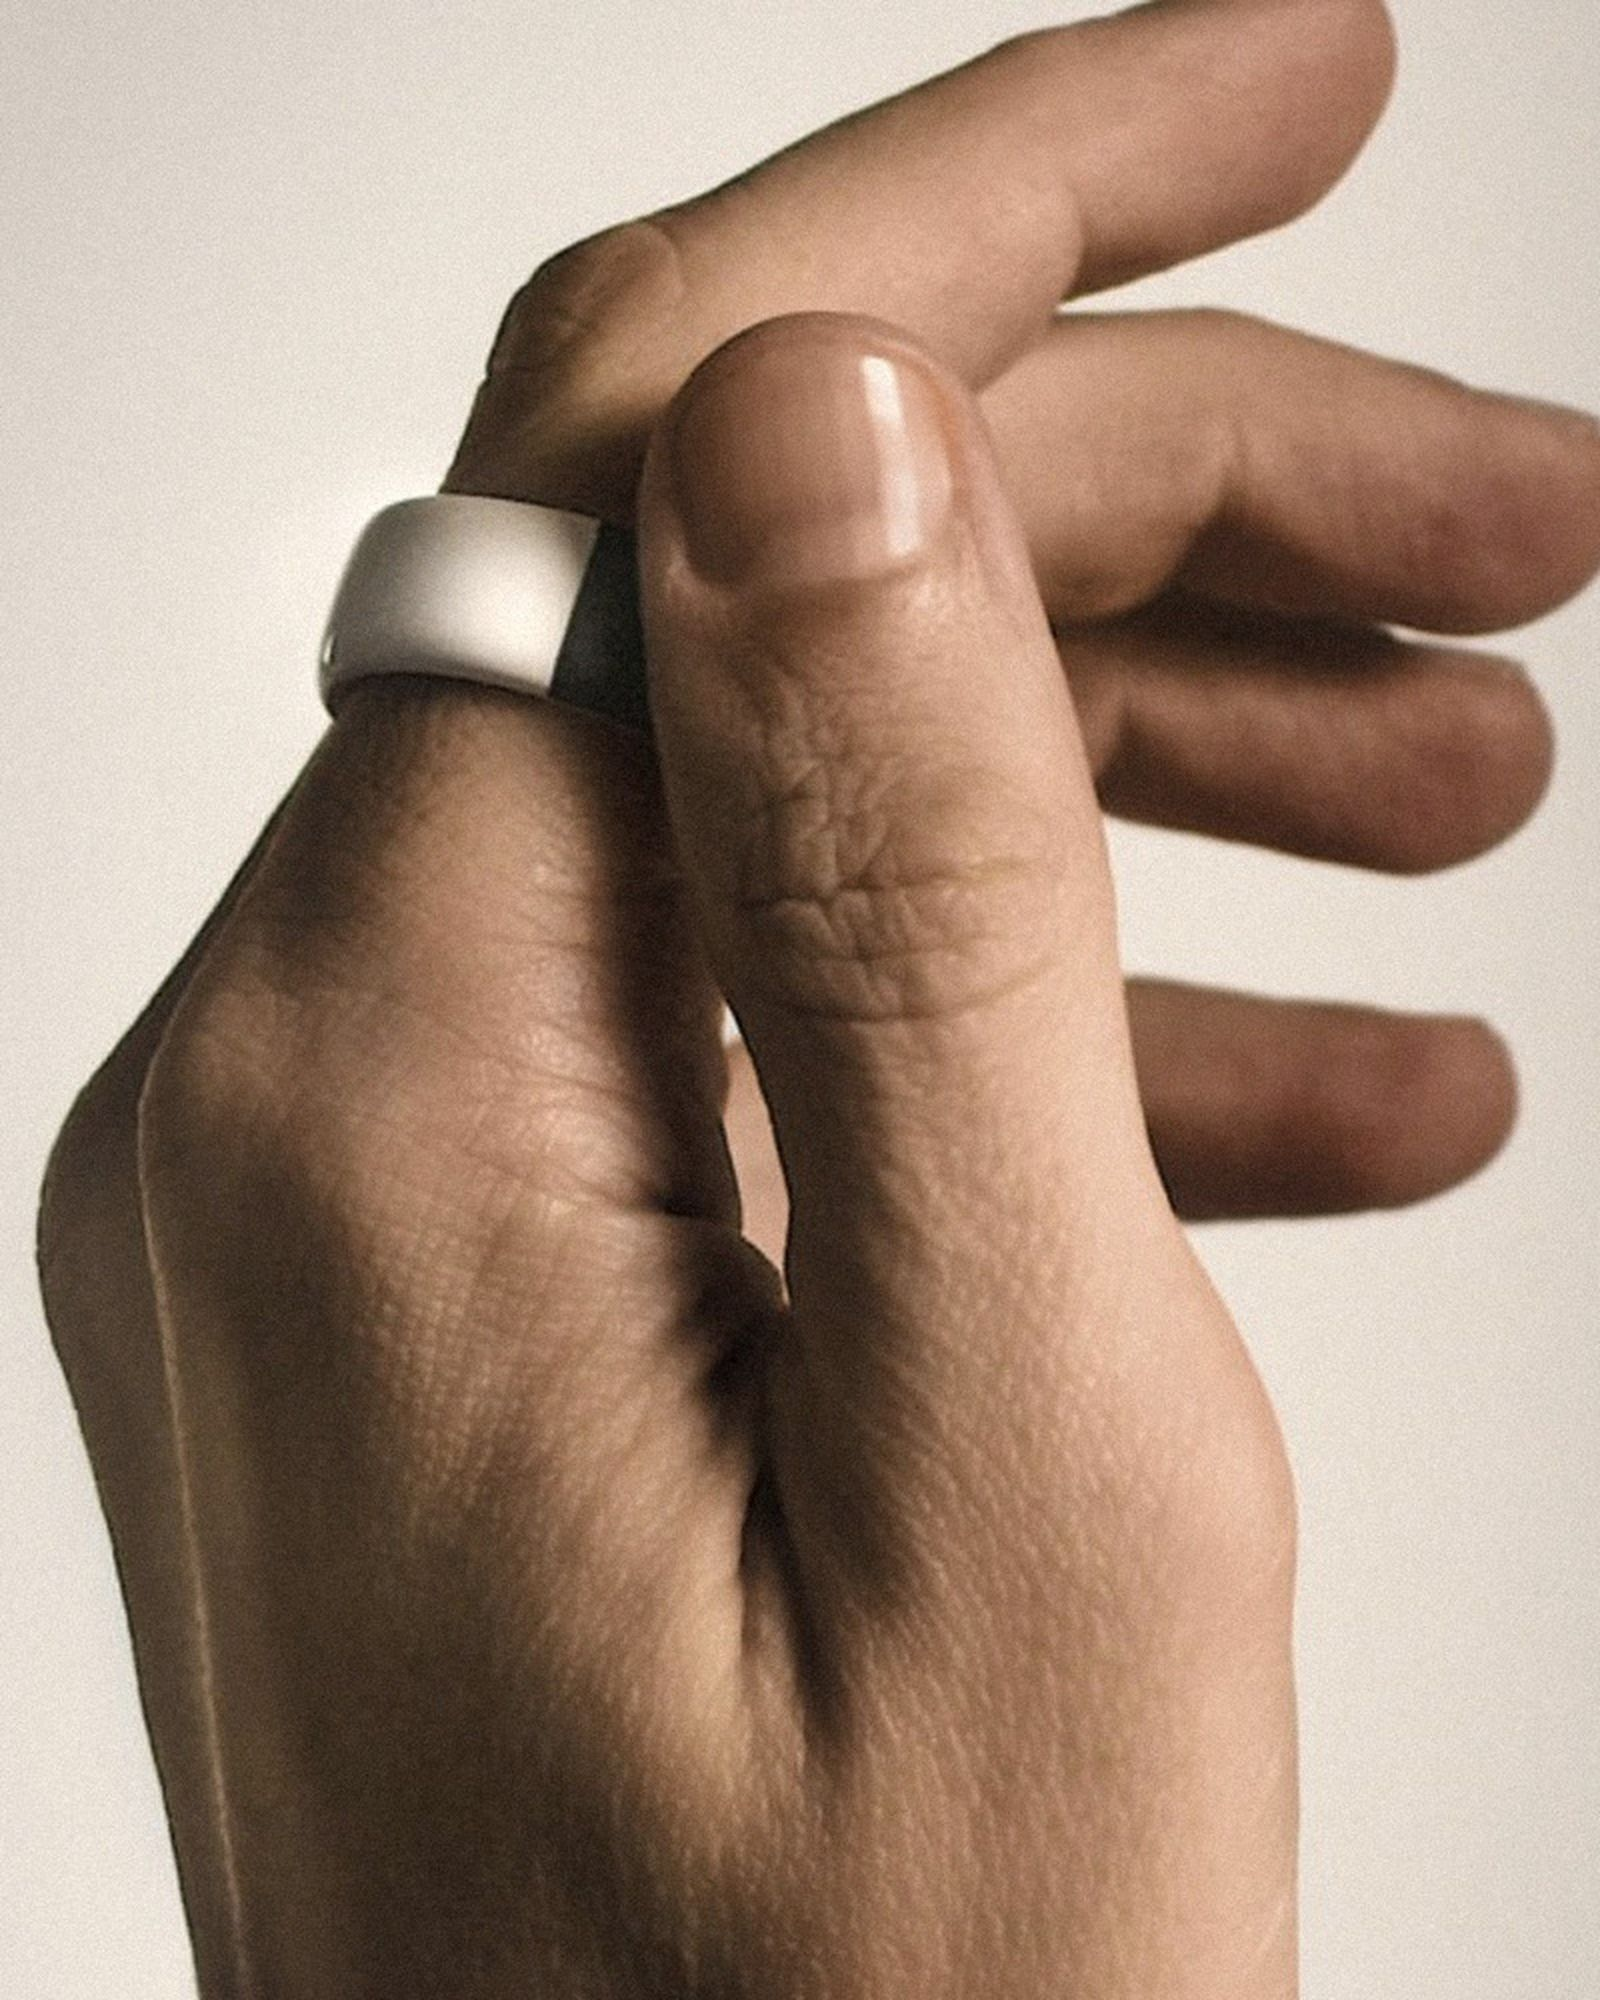 smartring-adds-new-meaning-contactless-payment-01